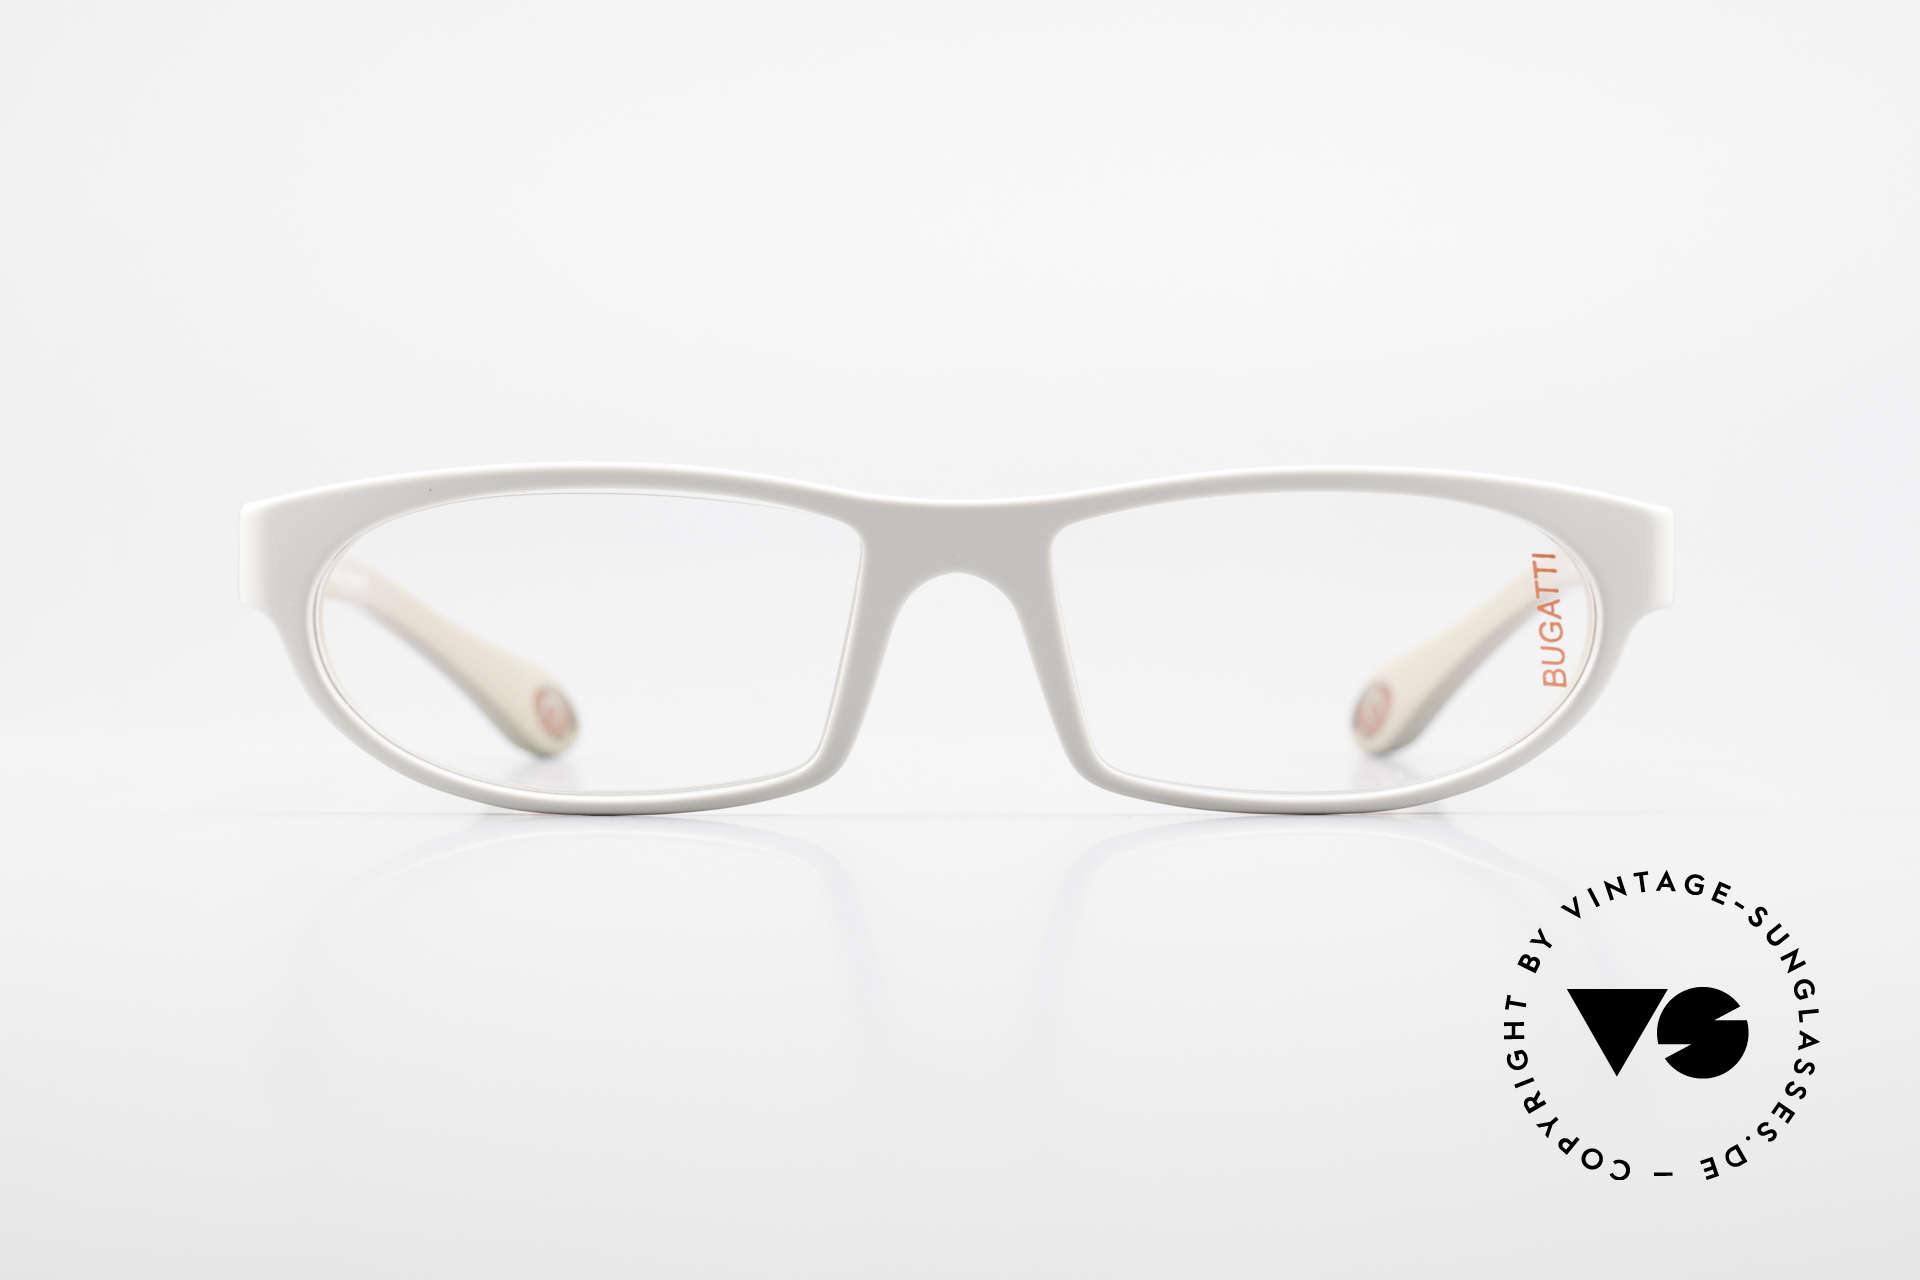 Bugatti 489 Sporty Designer Glasses Men, TOP-NOTCH quality of all frame components, Made for Men